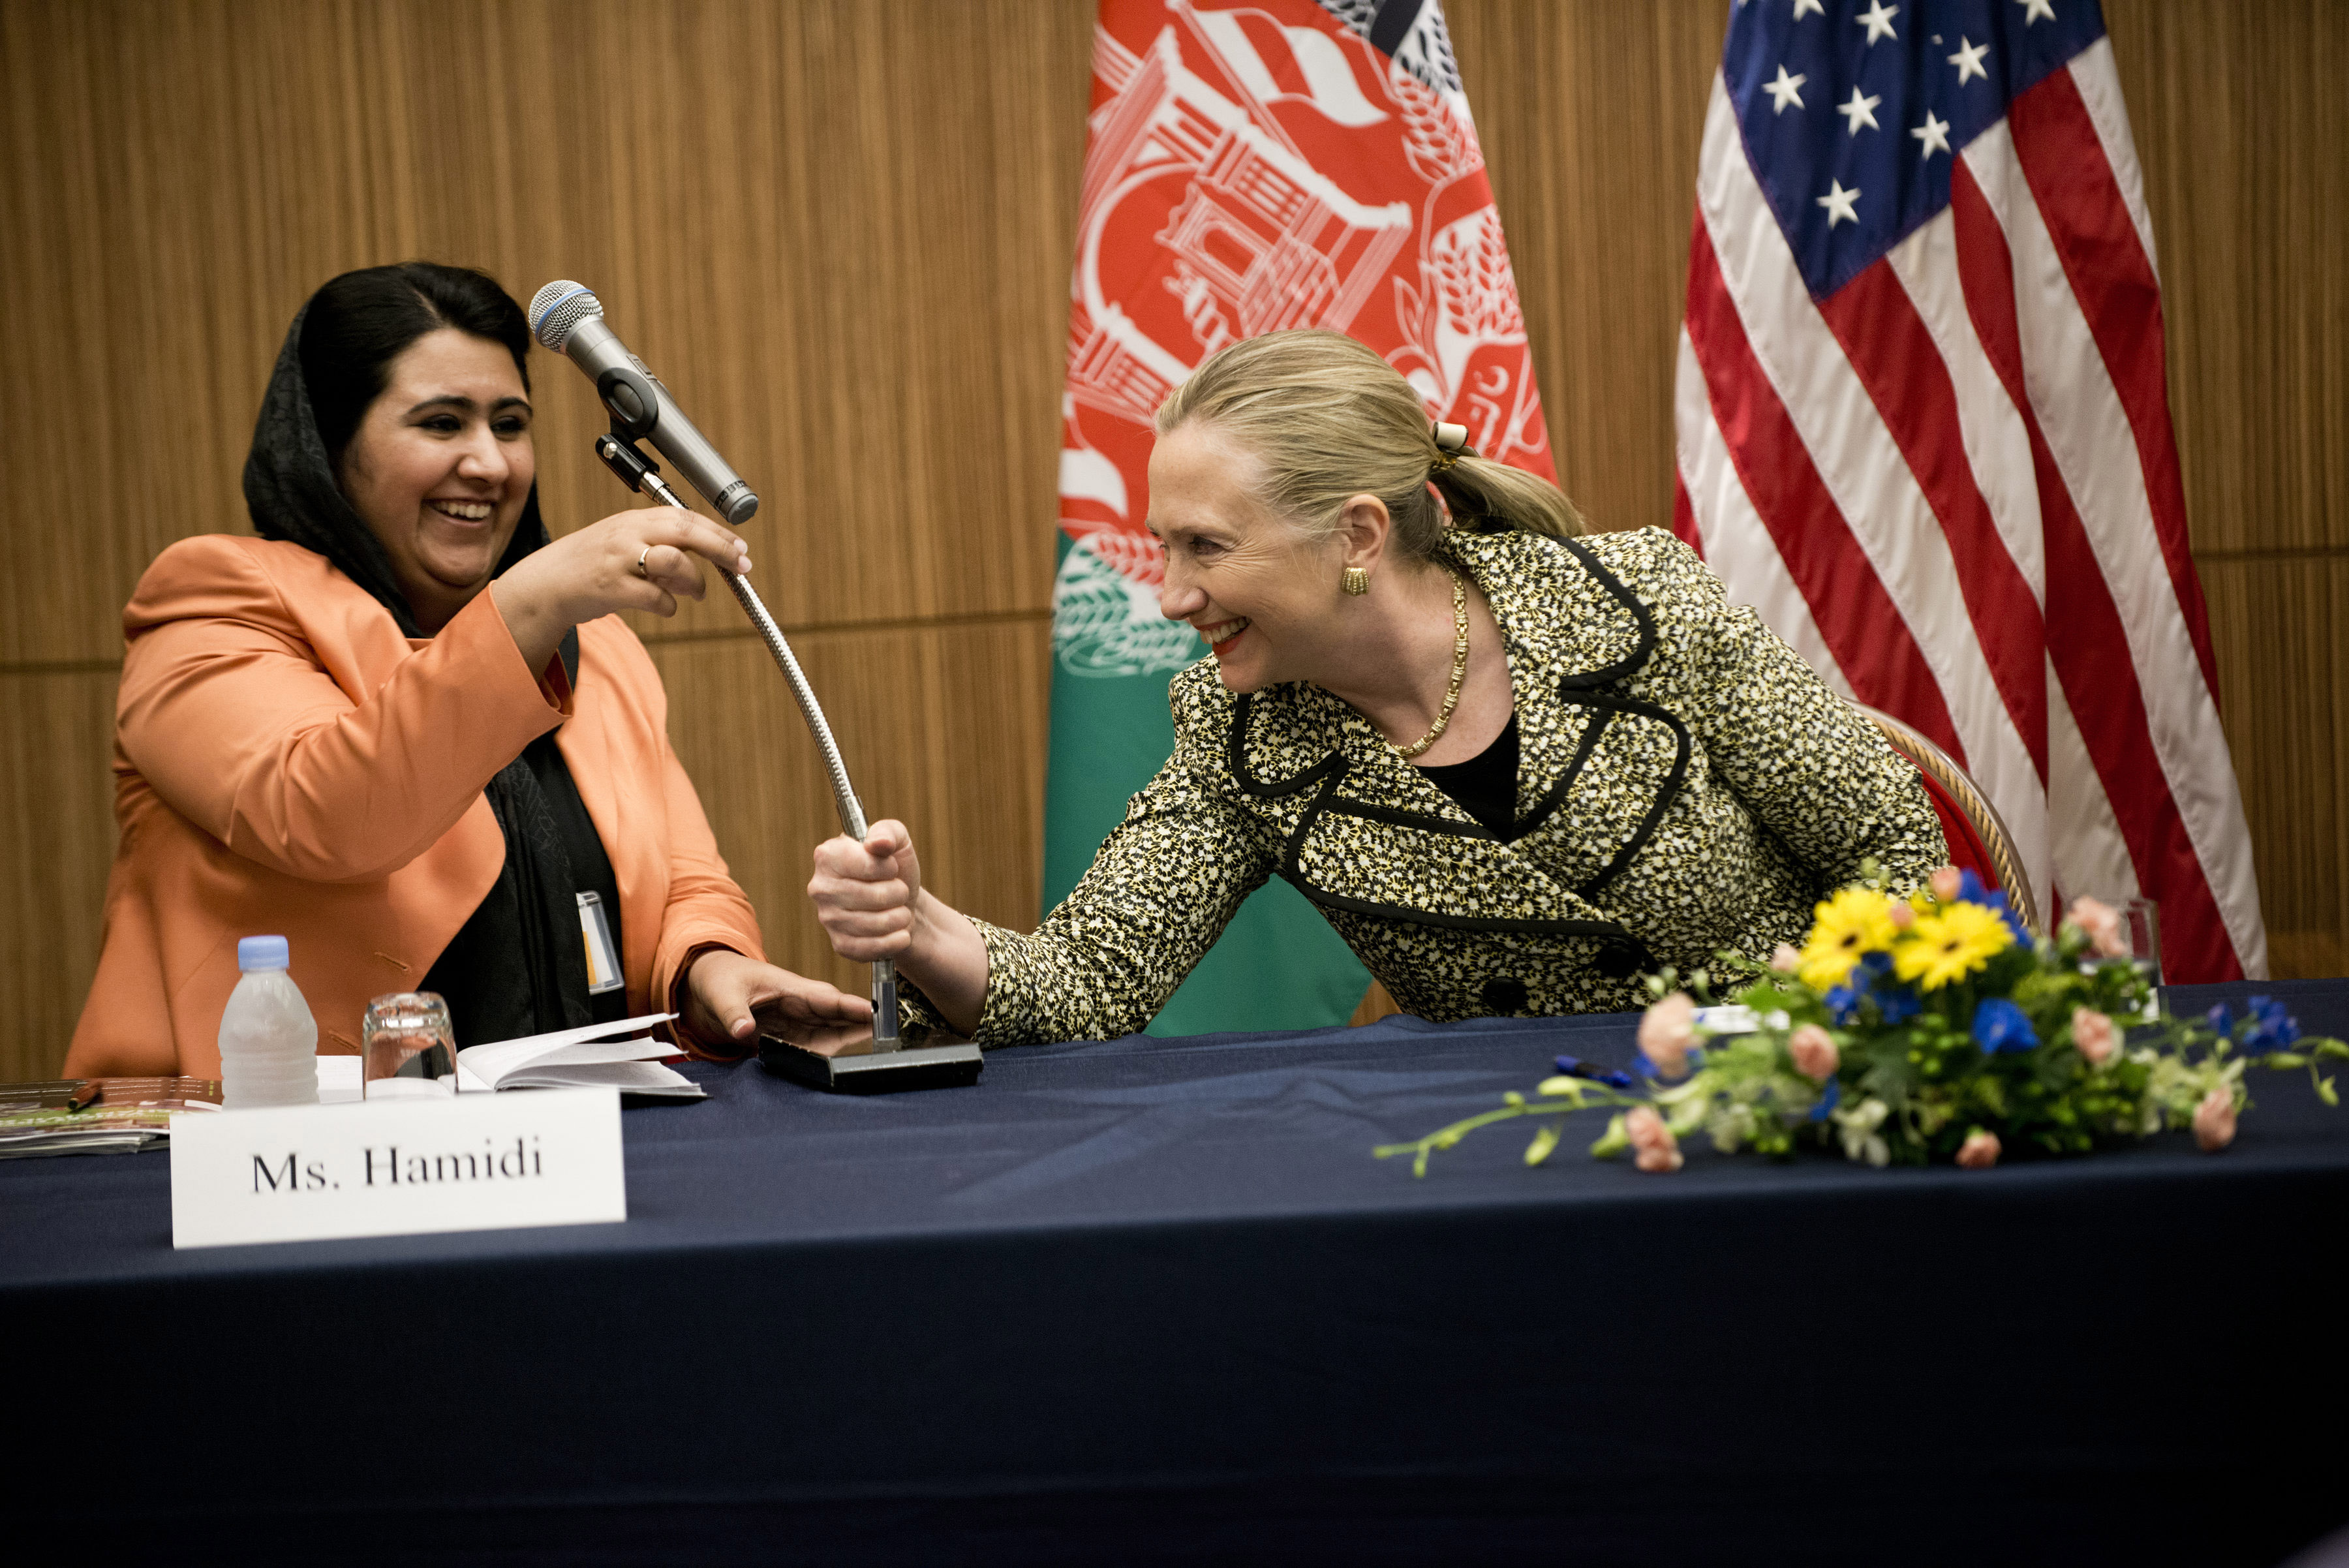 FILE - U.S. Secretary of State Hillary Clinton, right, helps Samira Hamidi, an Afghan rights advocate, with a microphone during the Afghan Civil Society event in Tokyo, July 8, 2012.